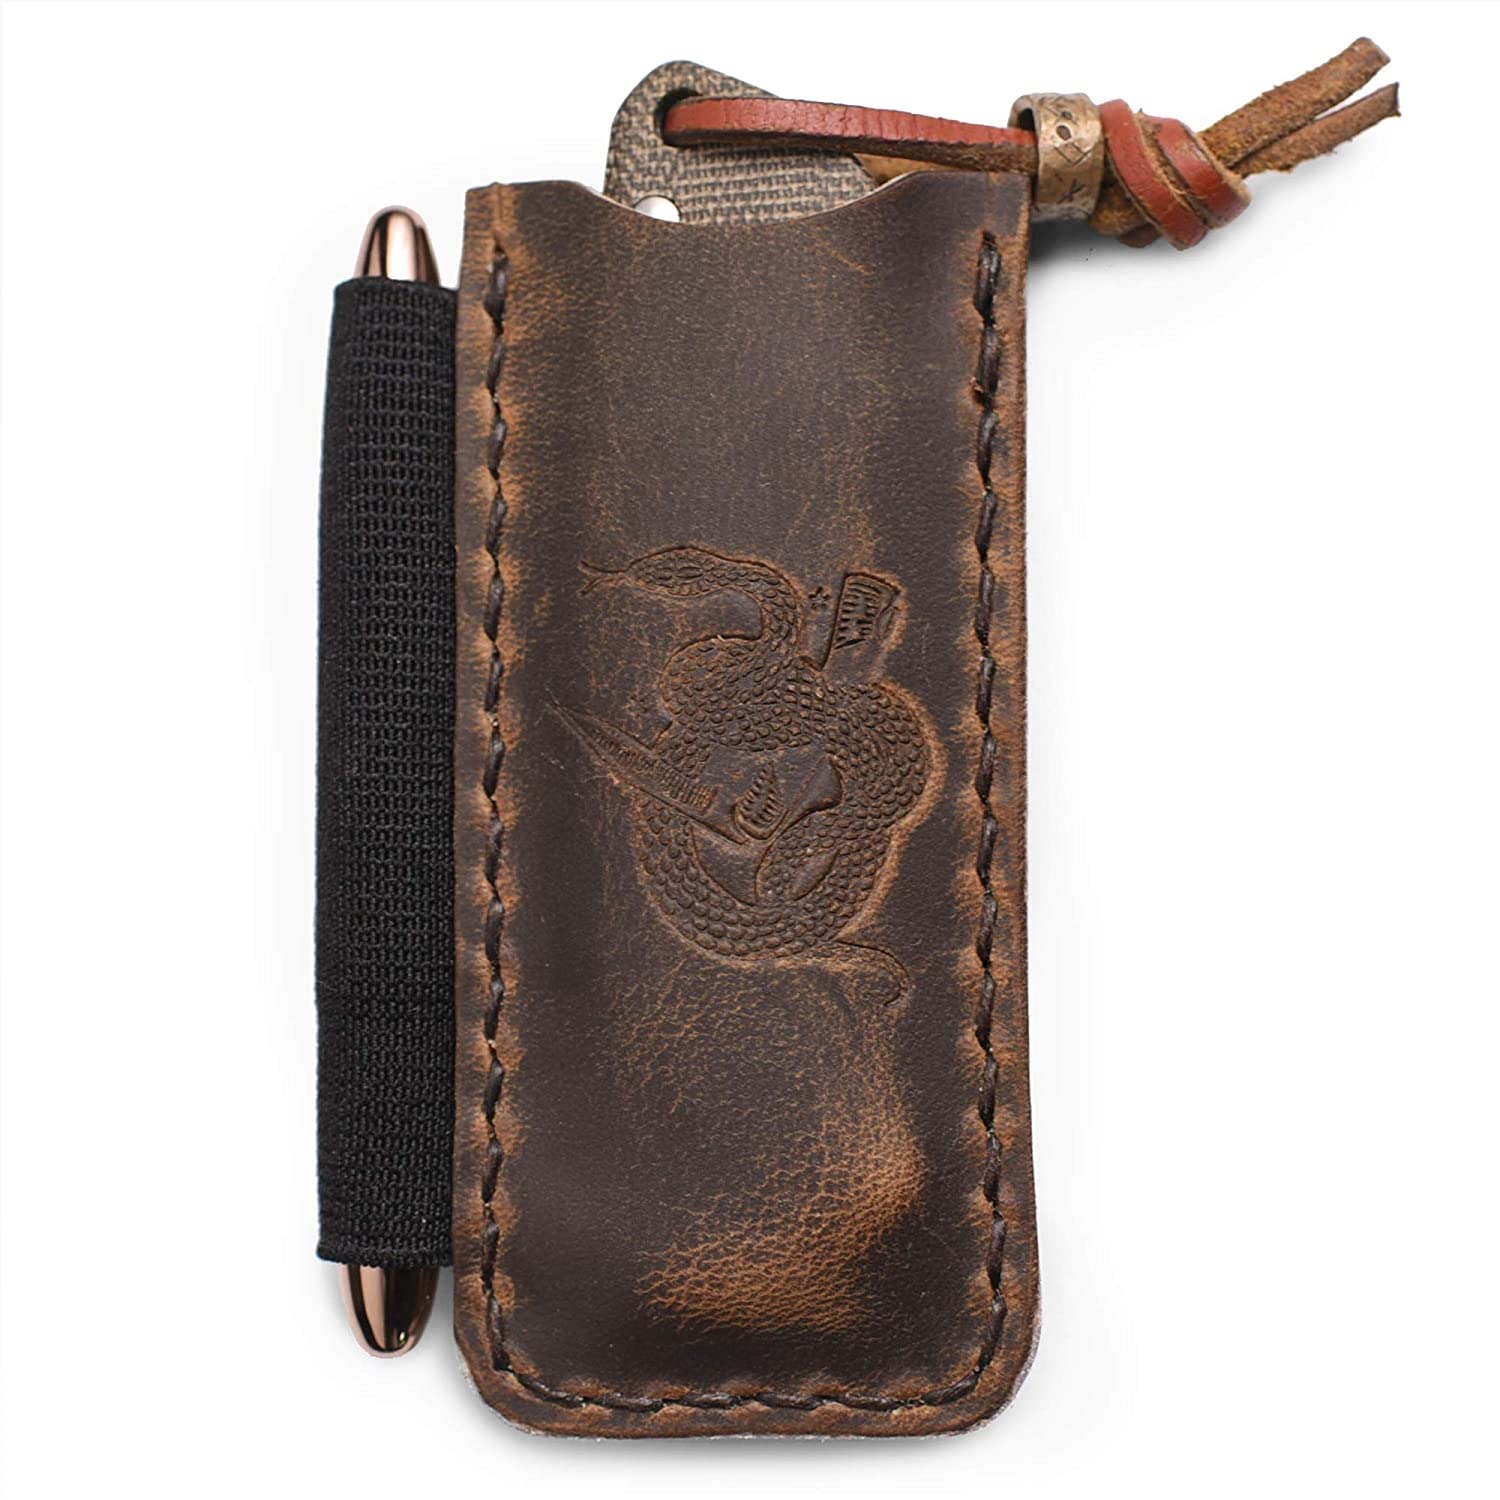 B078DRHTPY The Proper Slip by Hitch and Timber ~ Leather EDC Slip for Everyday Carry, Knife Sheath, EDC organizer, EDC Slip, Made in USA 81PgdNzqy1L